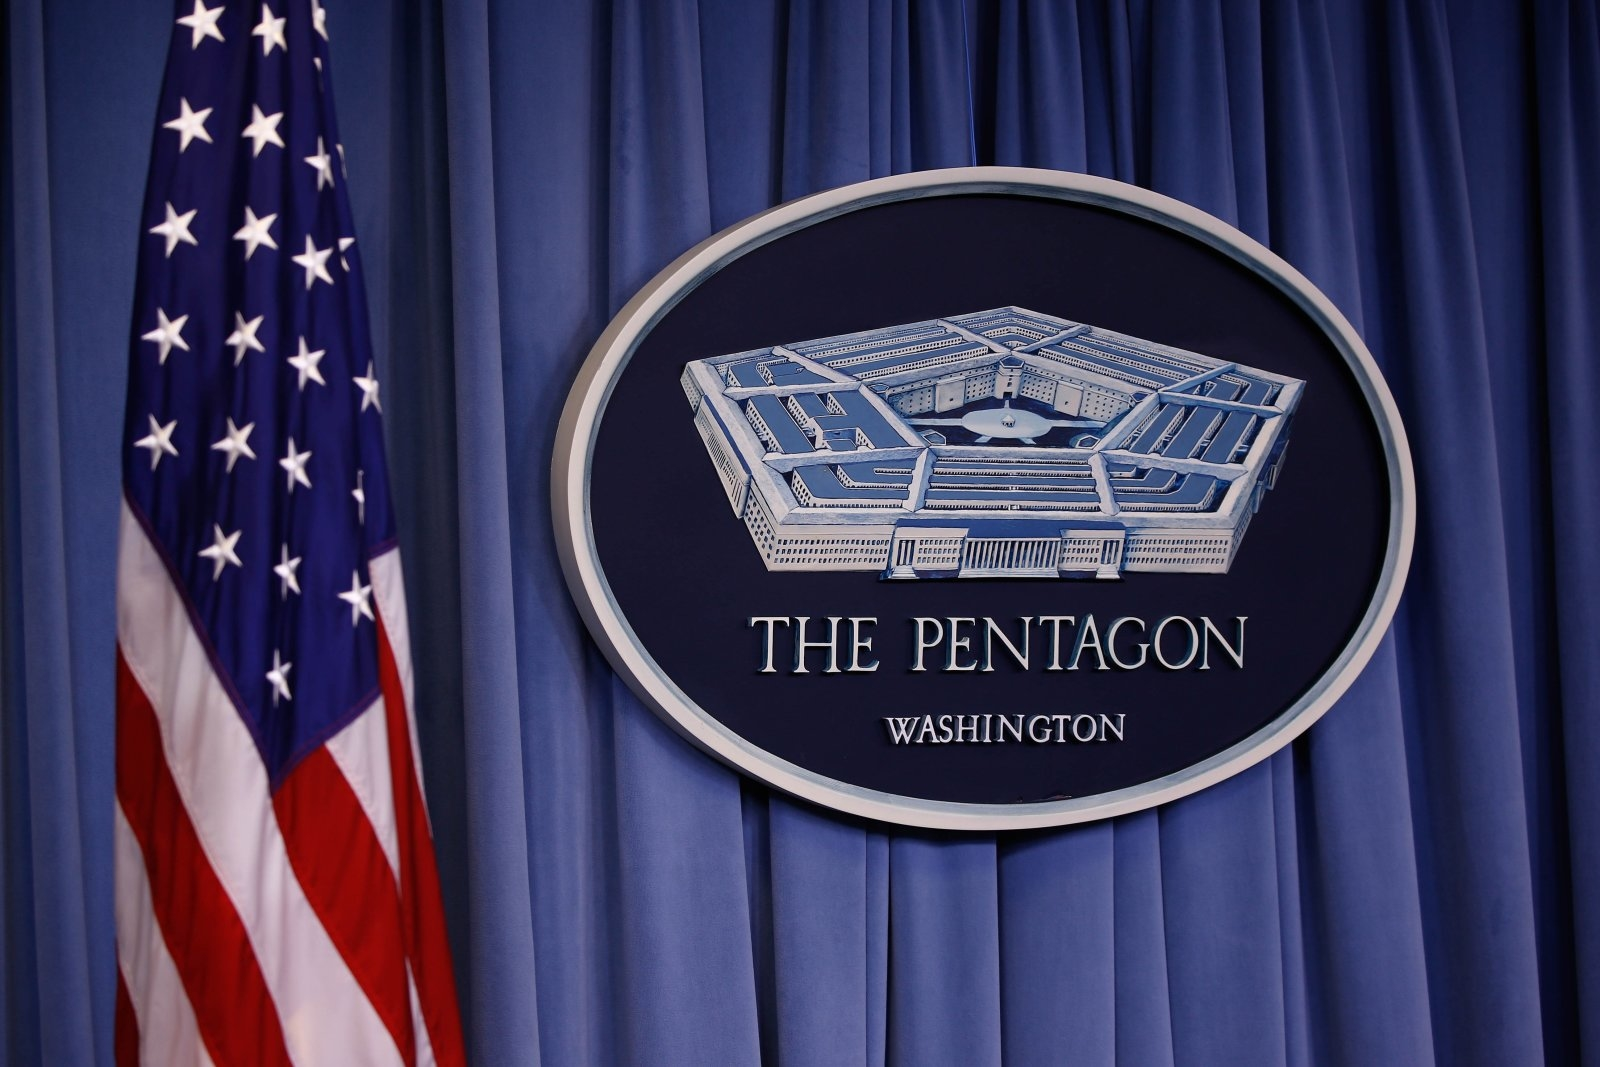 WASHINGTON DC, USA - APRIL 13: US flag and Pentagon logo are seen before the press conference of U.S. Defense Secretary Mattis and Chairman of the Joint Chiefs of Staff Gen. Dunford on Syria at the Pentagon in Washington, United States on April 13, 2018. (Photo by Yasin Ozturk/Anadolu Agency/Getty Images)